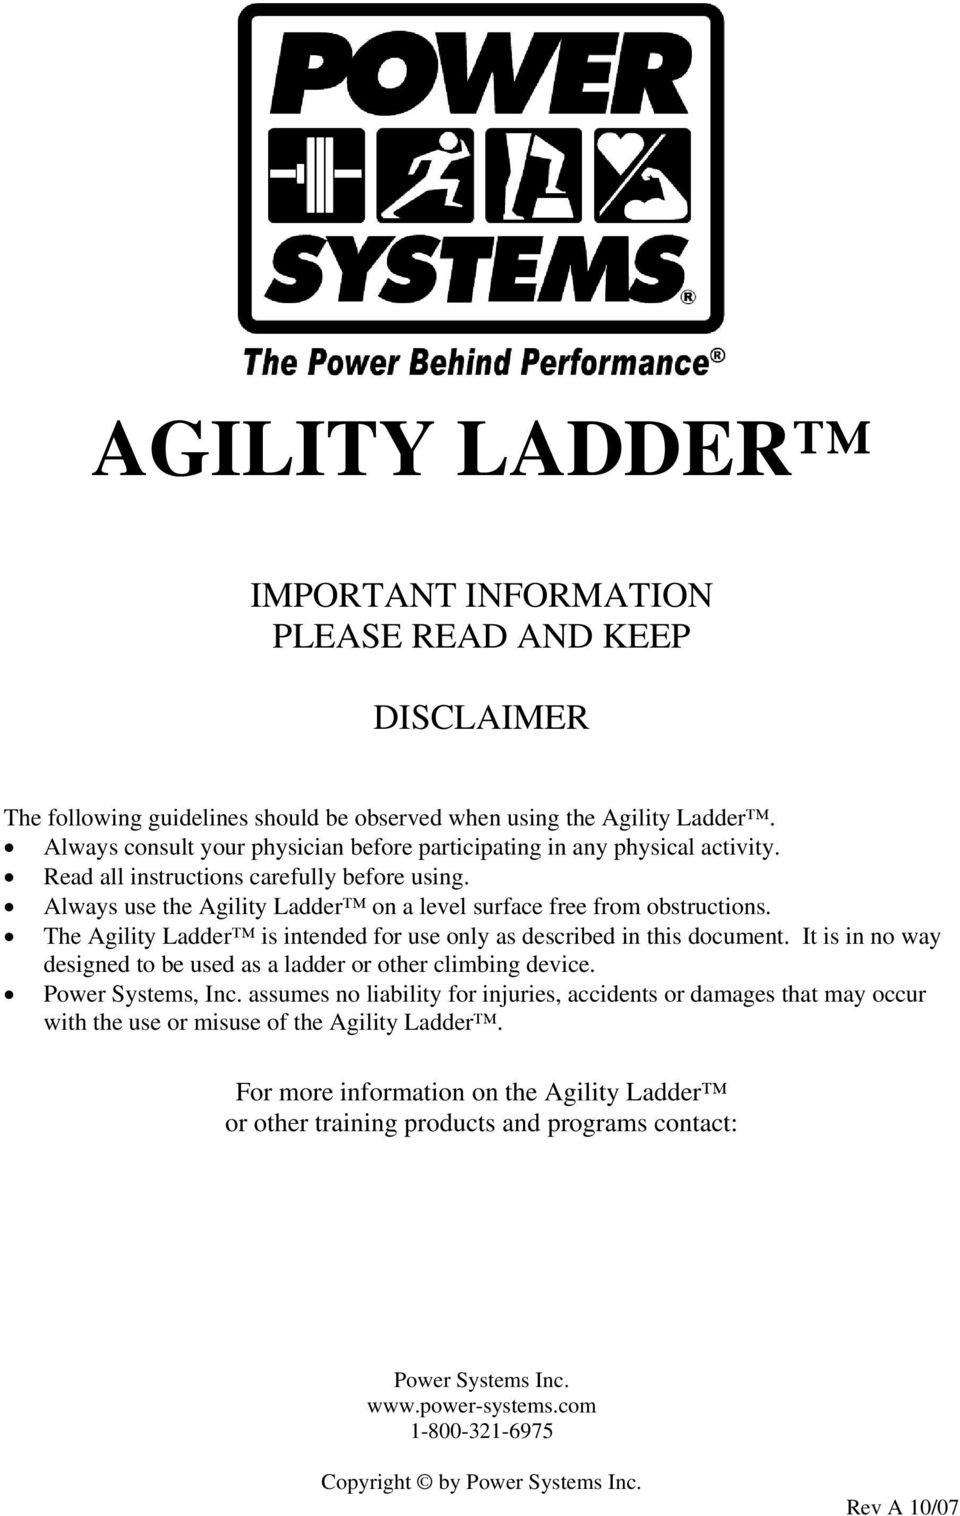 Always use the Agility Ladder on a level surface free from obstructions. The Agility Ladder is intended for use only as described in this document.